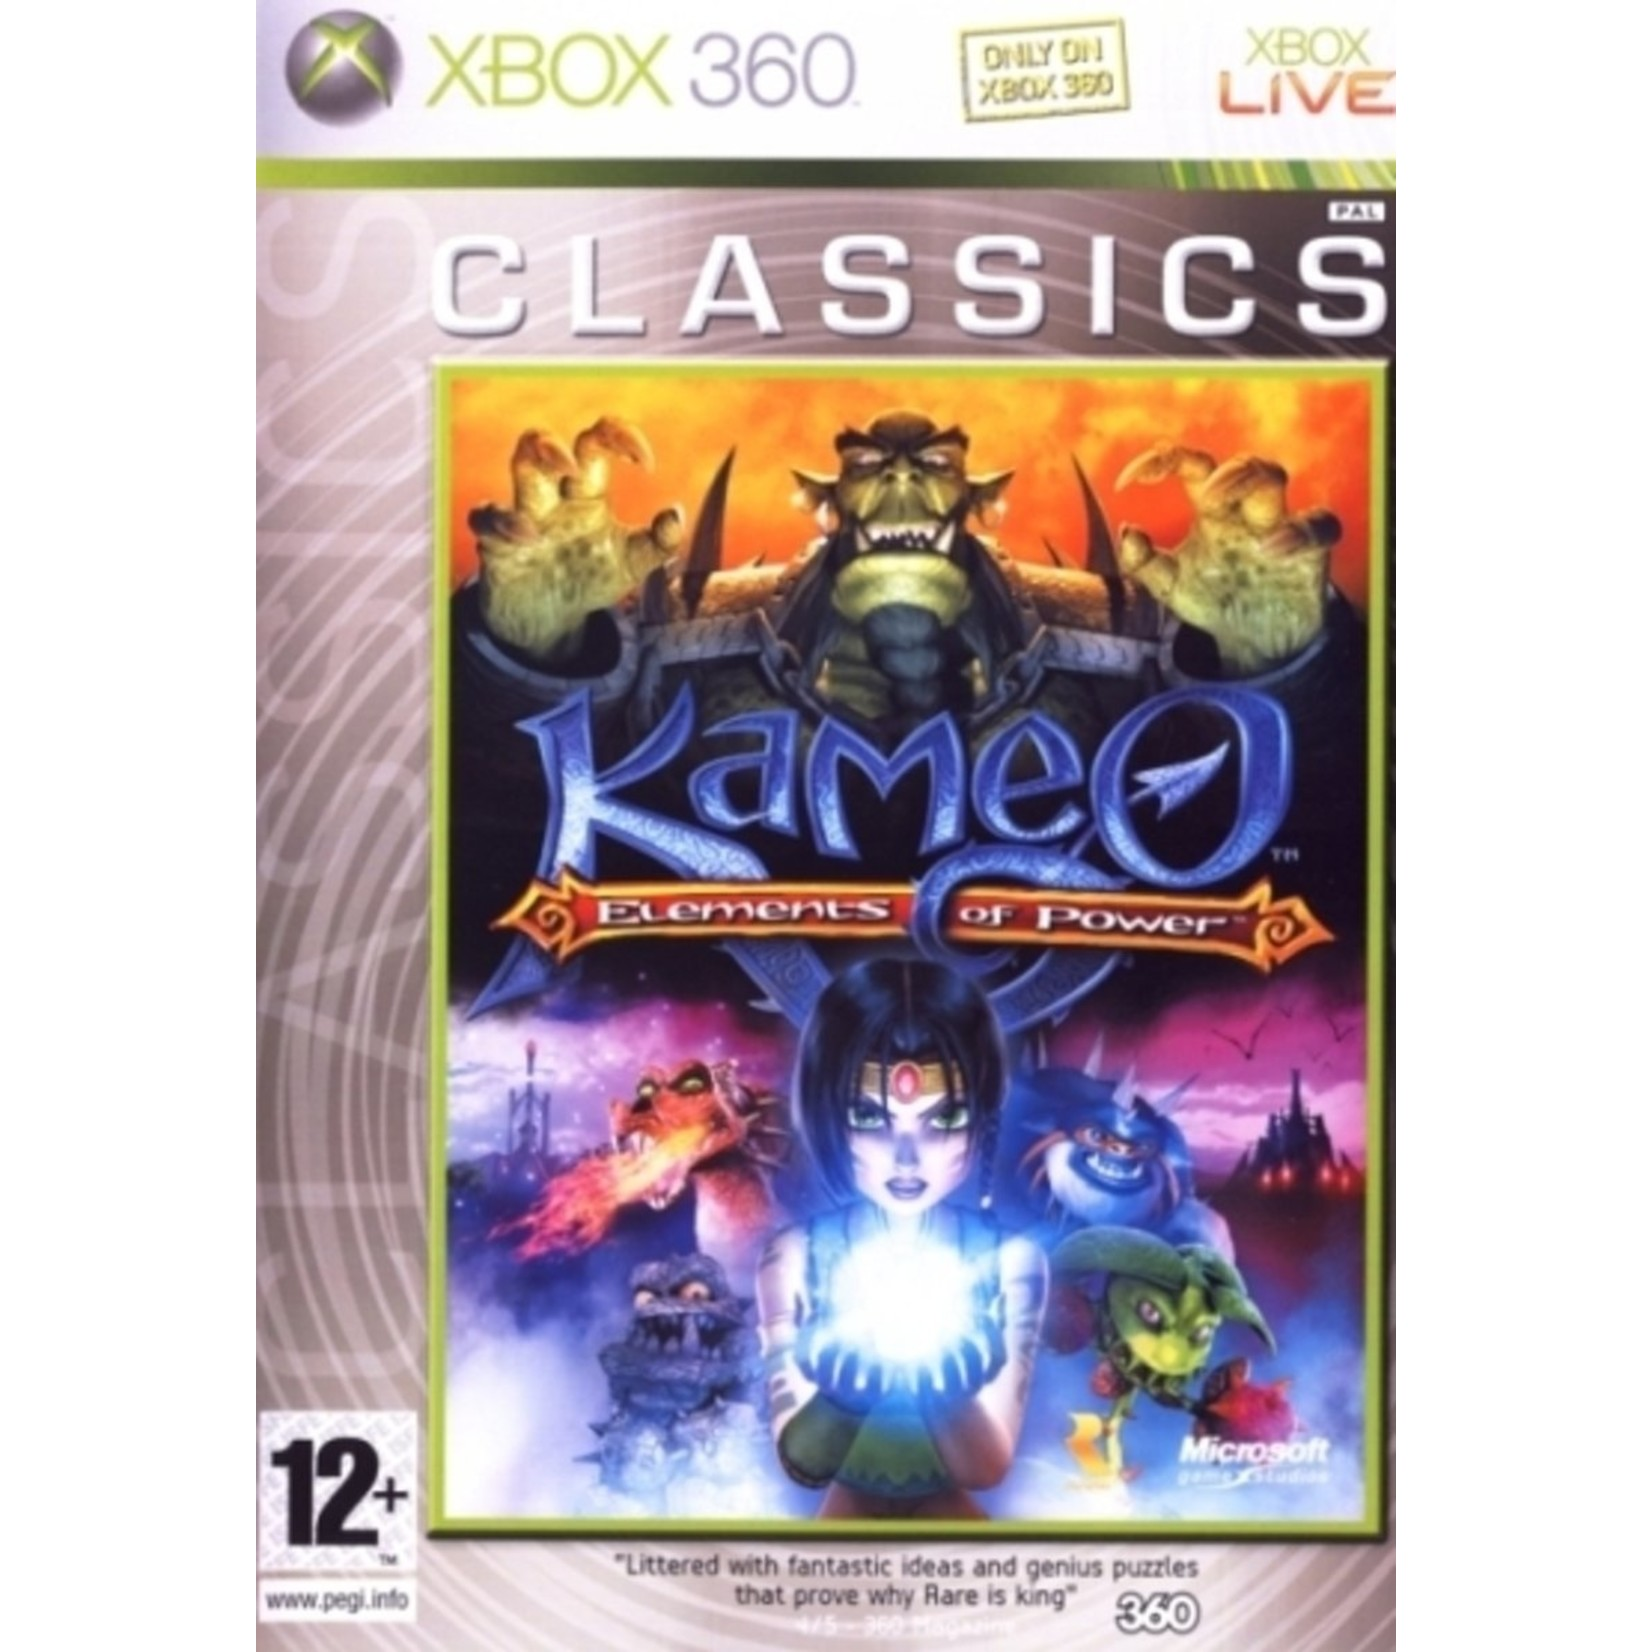 Kameo - Elements Of Power (Classics)